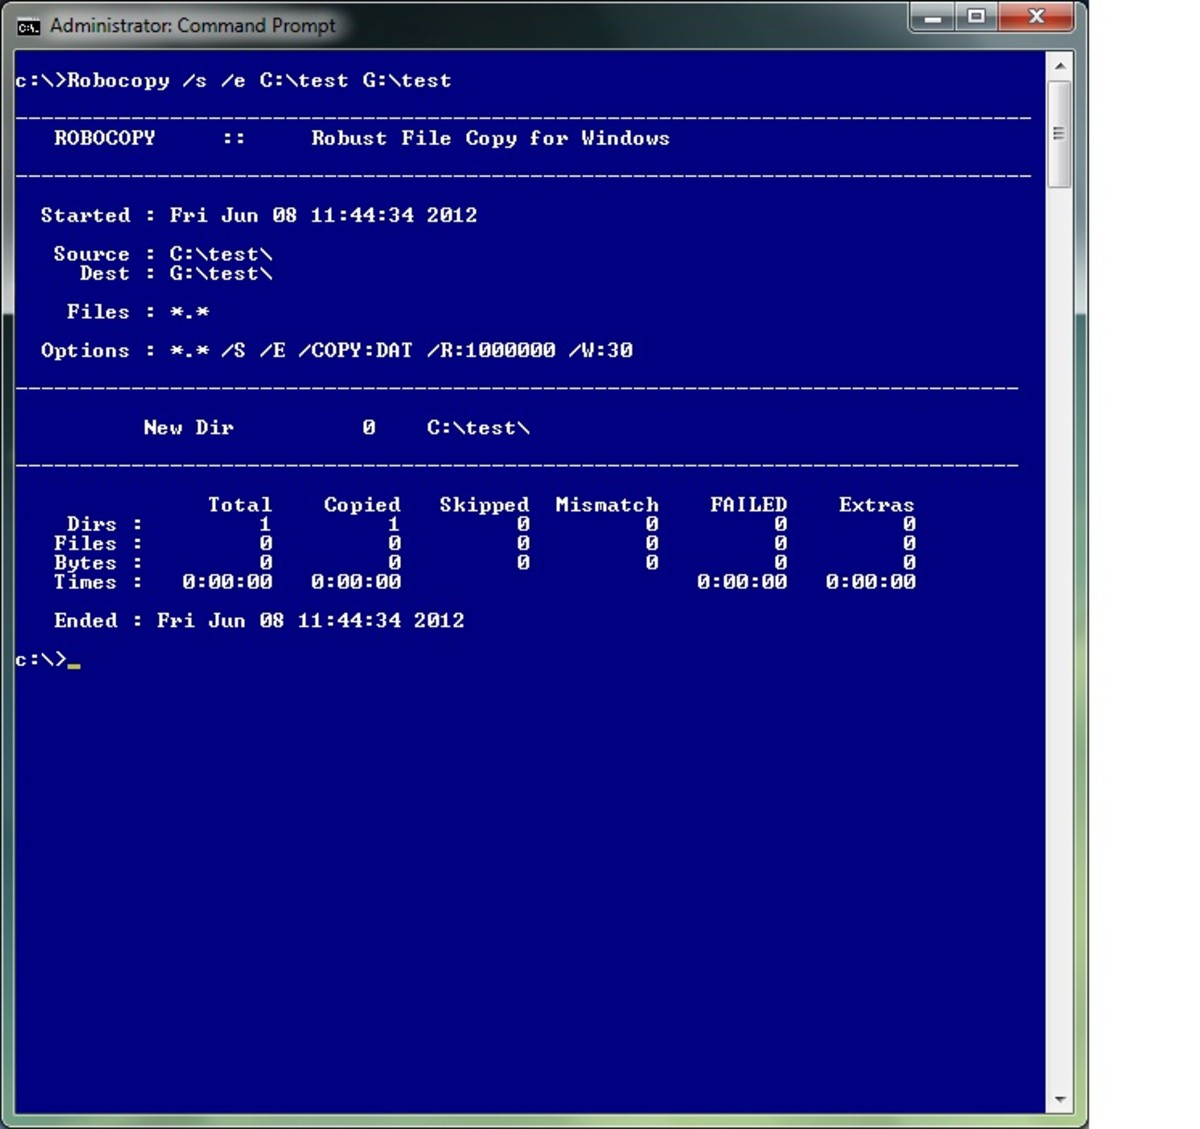 Robocopy (robustcopy) is one of the most useful Windows 7 Commands you can use. Tip - You can also download the Windows resource kit for older versions of Windows.